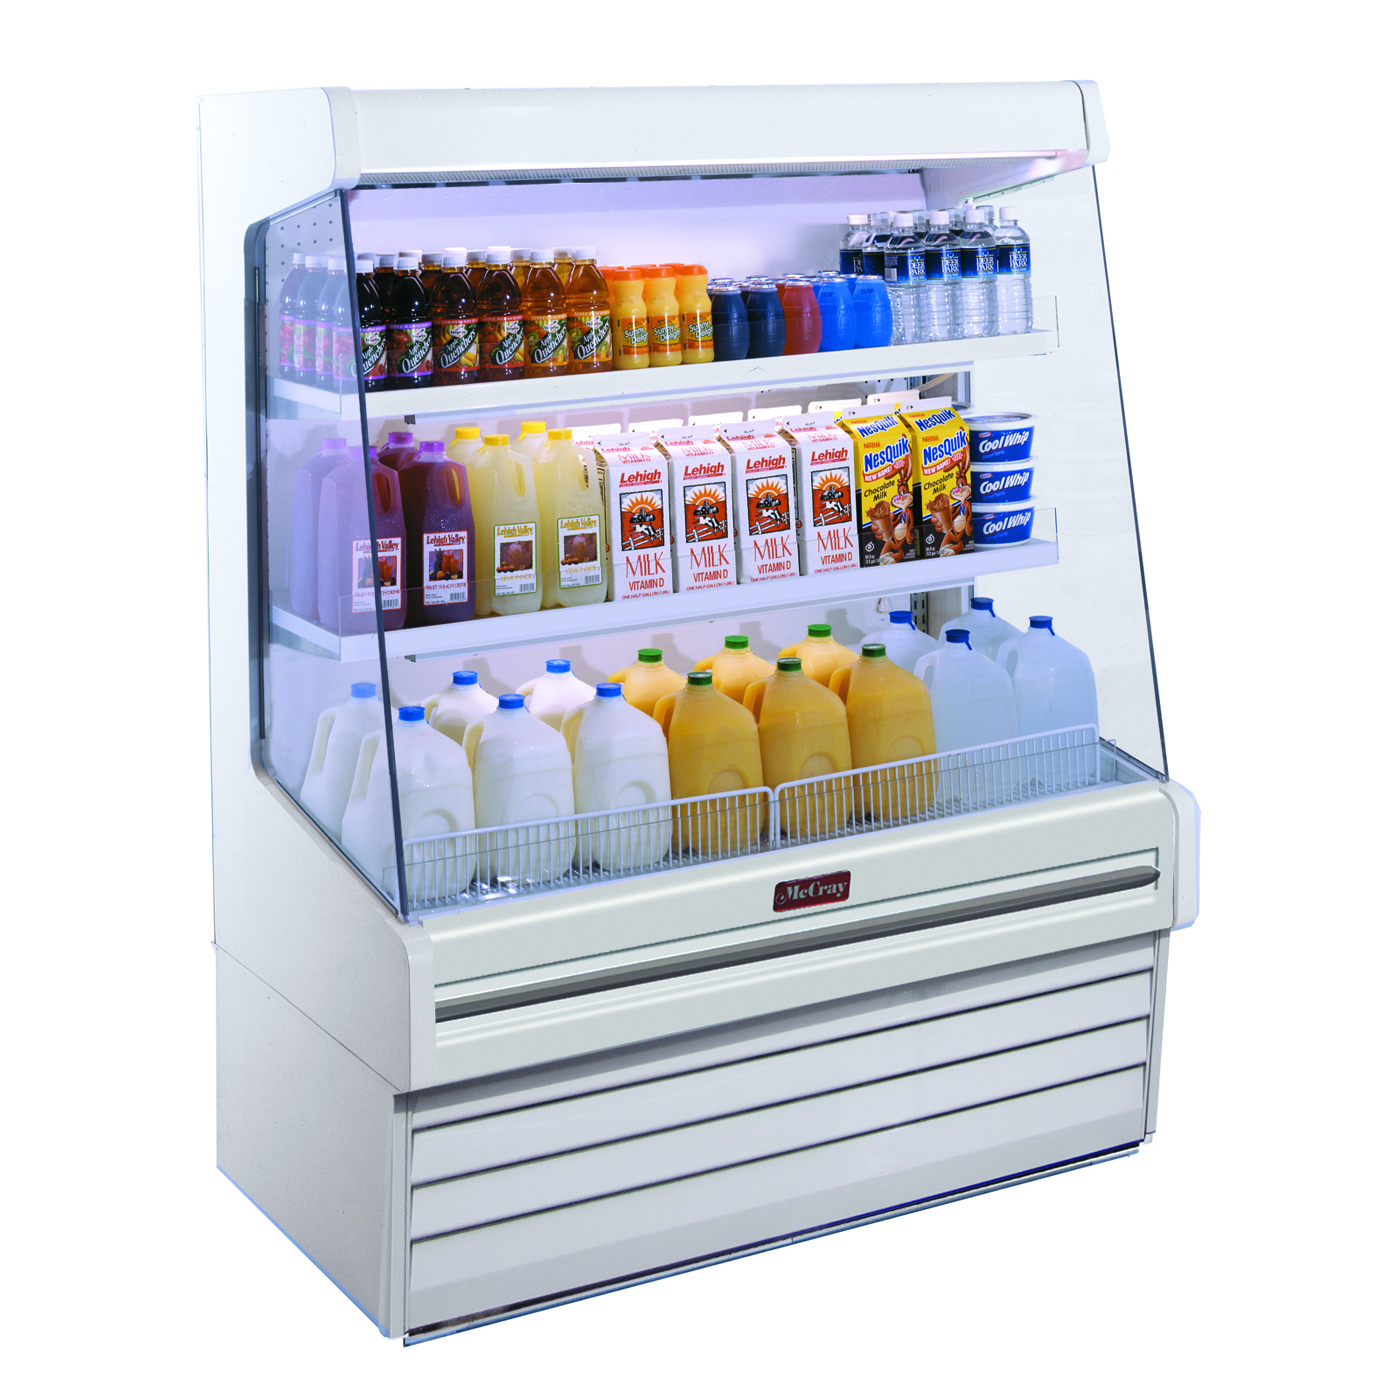 Howard-McCray R-OD30E-8L-S-LED merchandiser, open refrigerated display